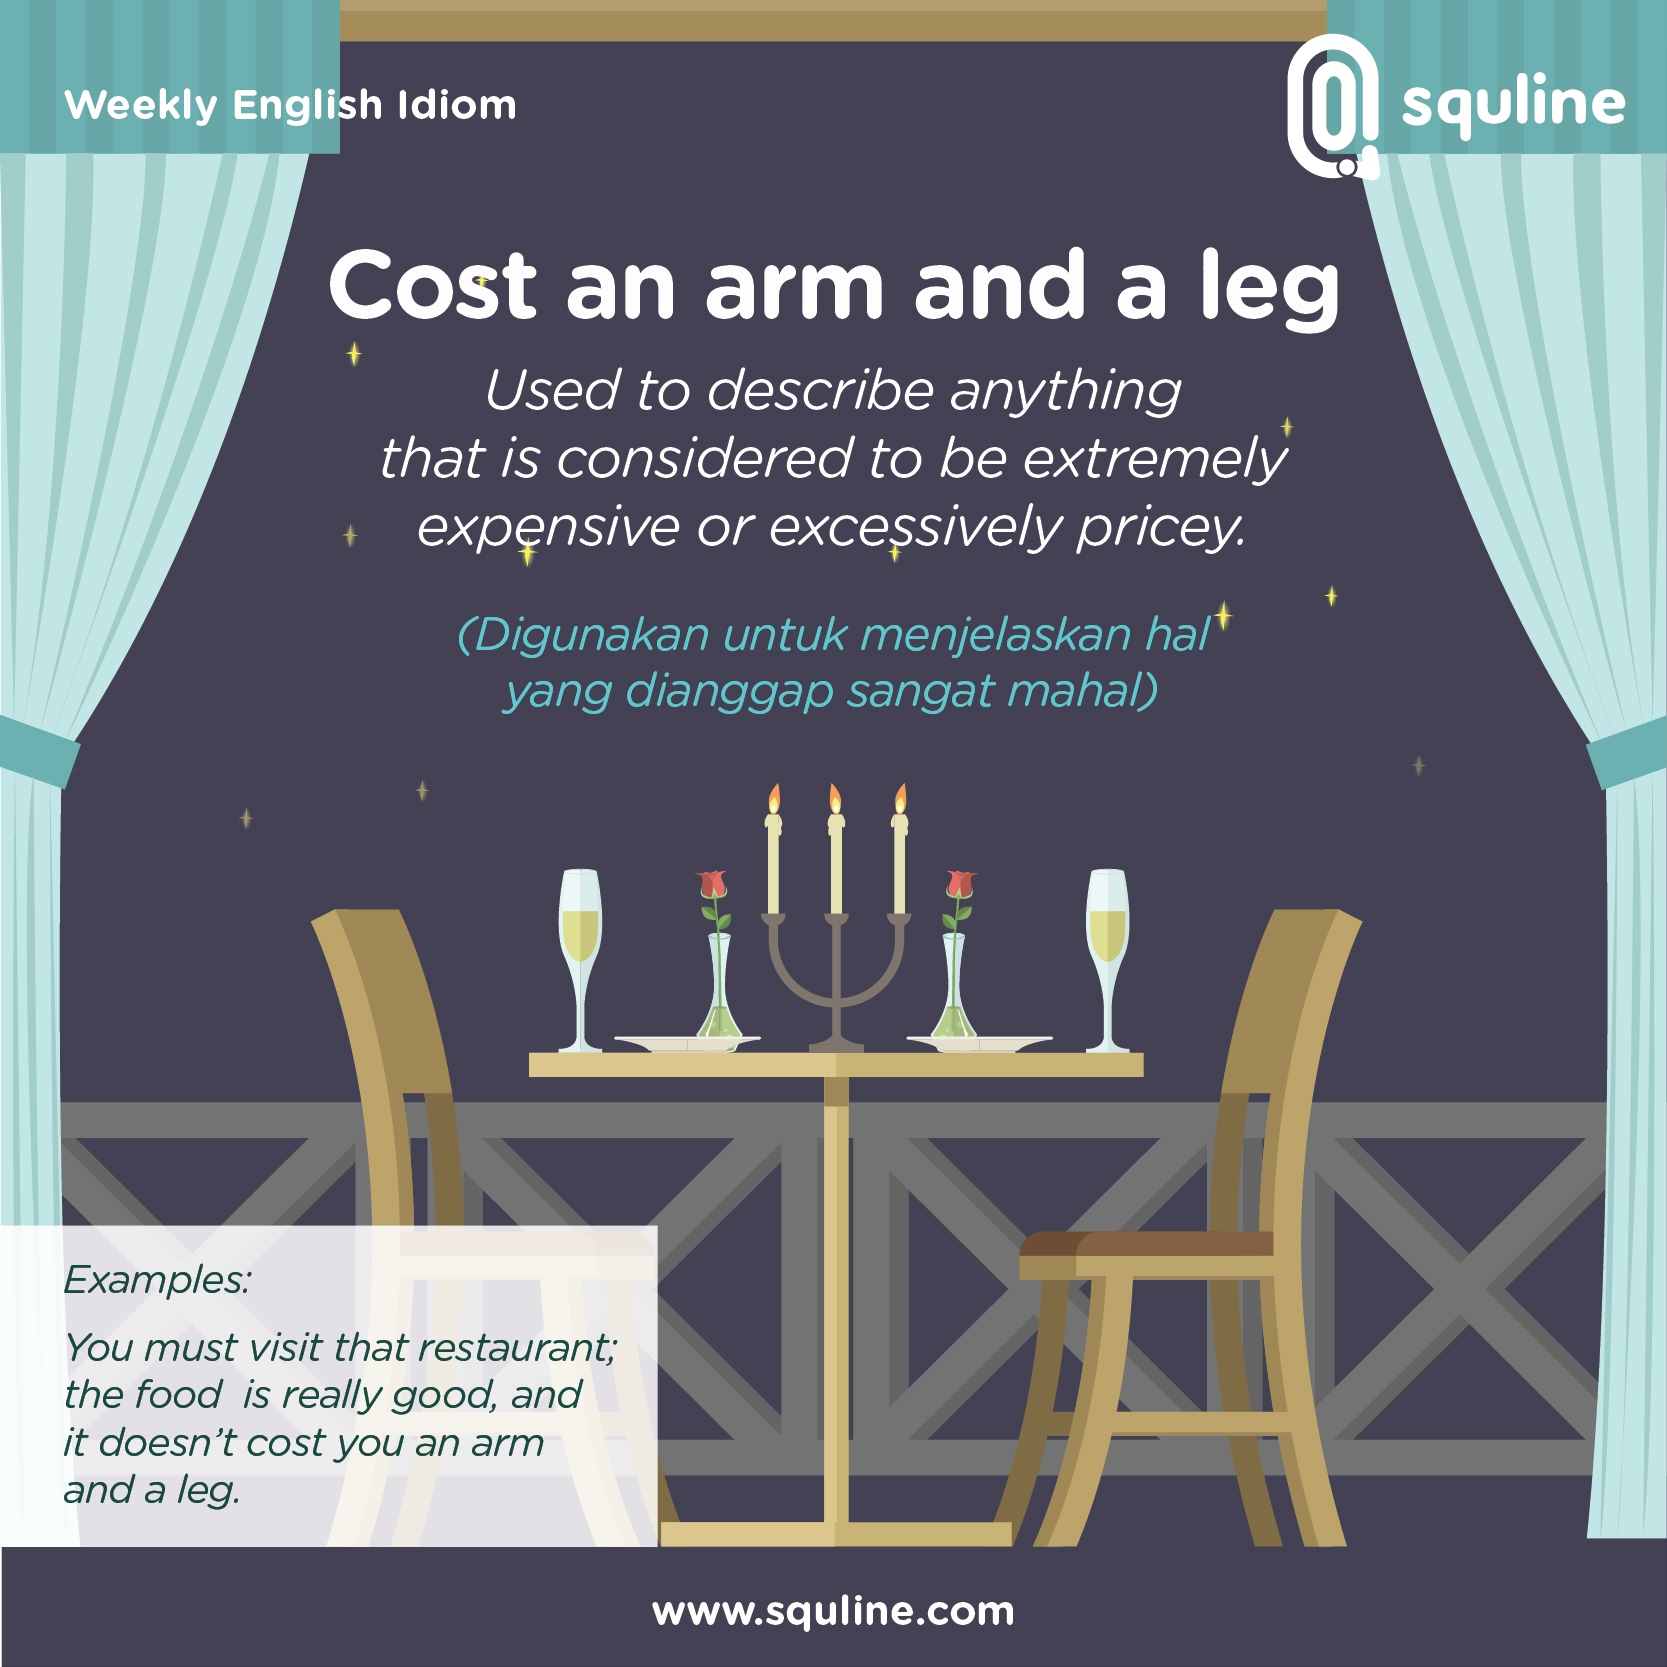 11 ENGLISH IDIOM_Cost an arm and a leg_OCTOBER WEEK 2